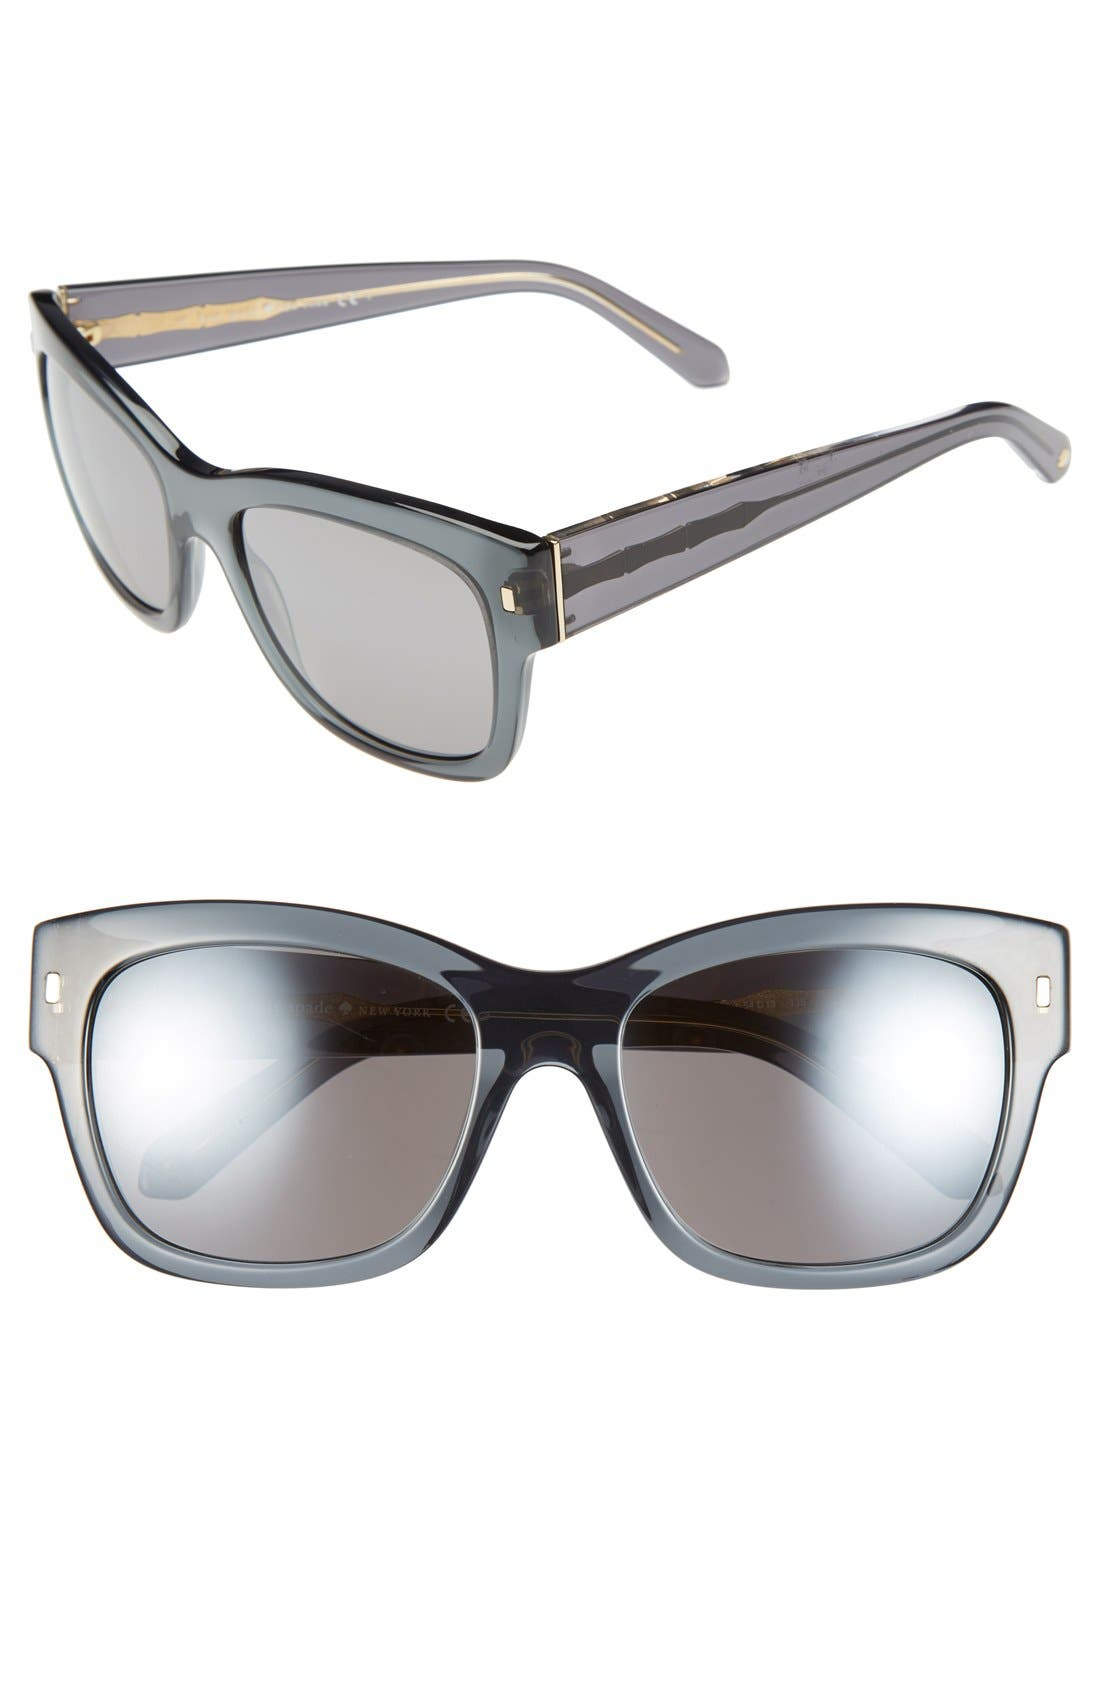 Alternate Image 1 Selected - kate spade new york 'tahira' 54mm retro sunglasses